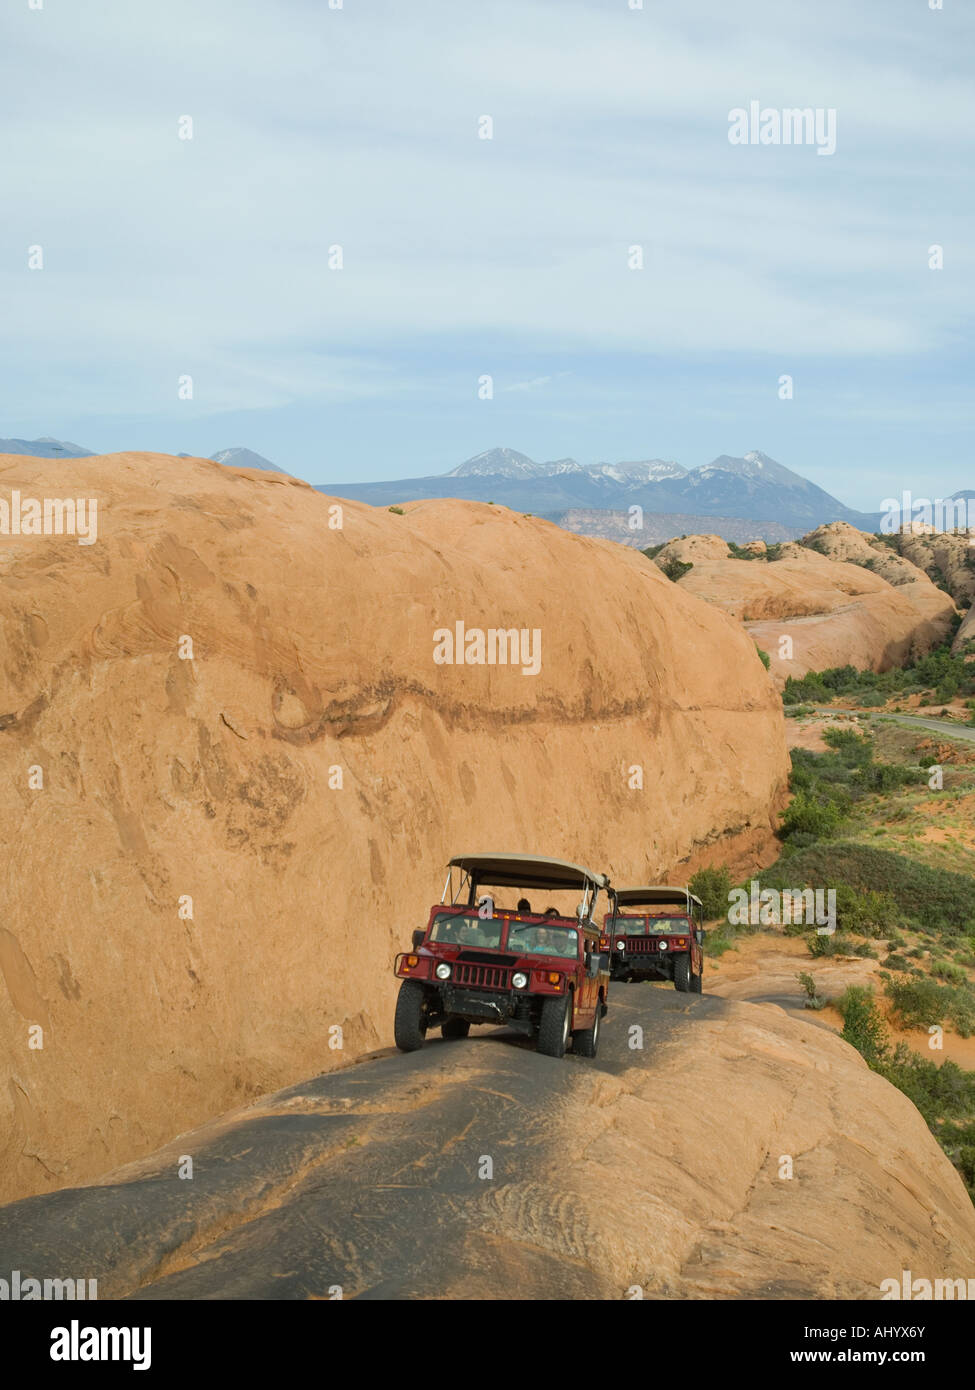 Off-road vehicles driving on rock formation - Stock Image